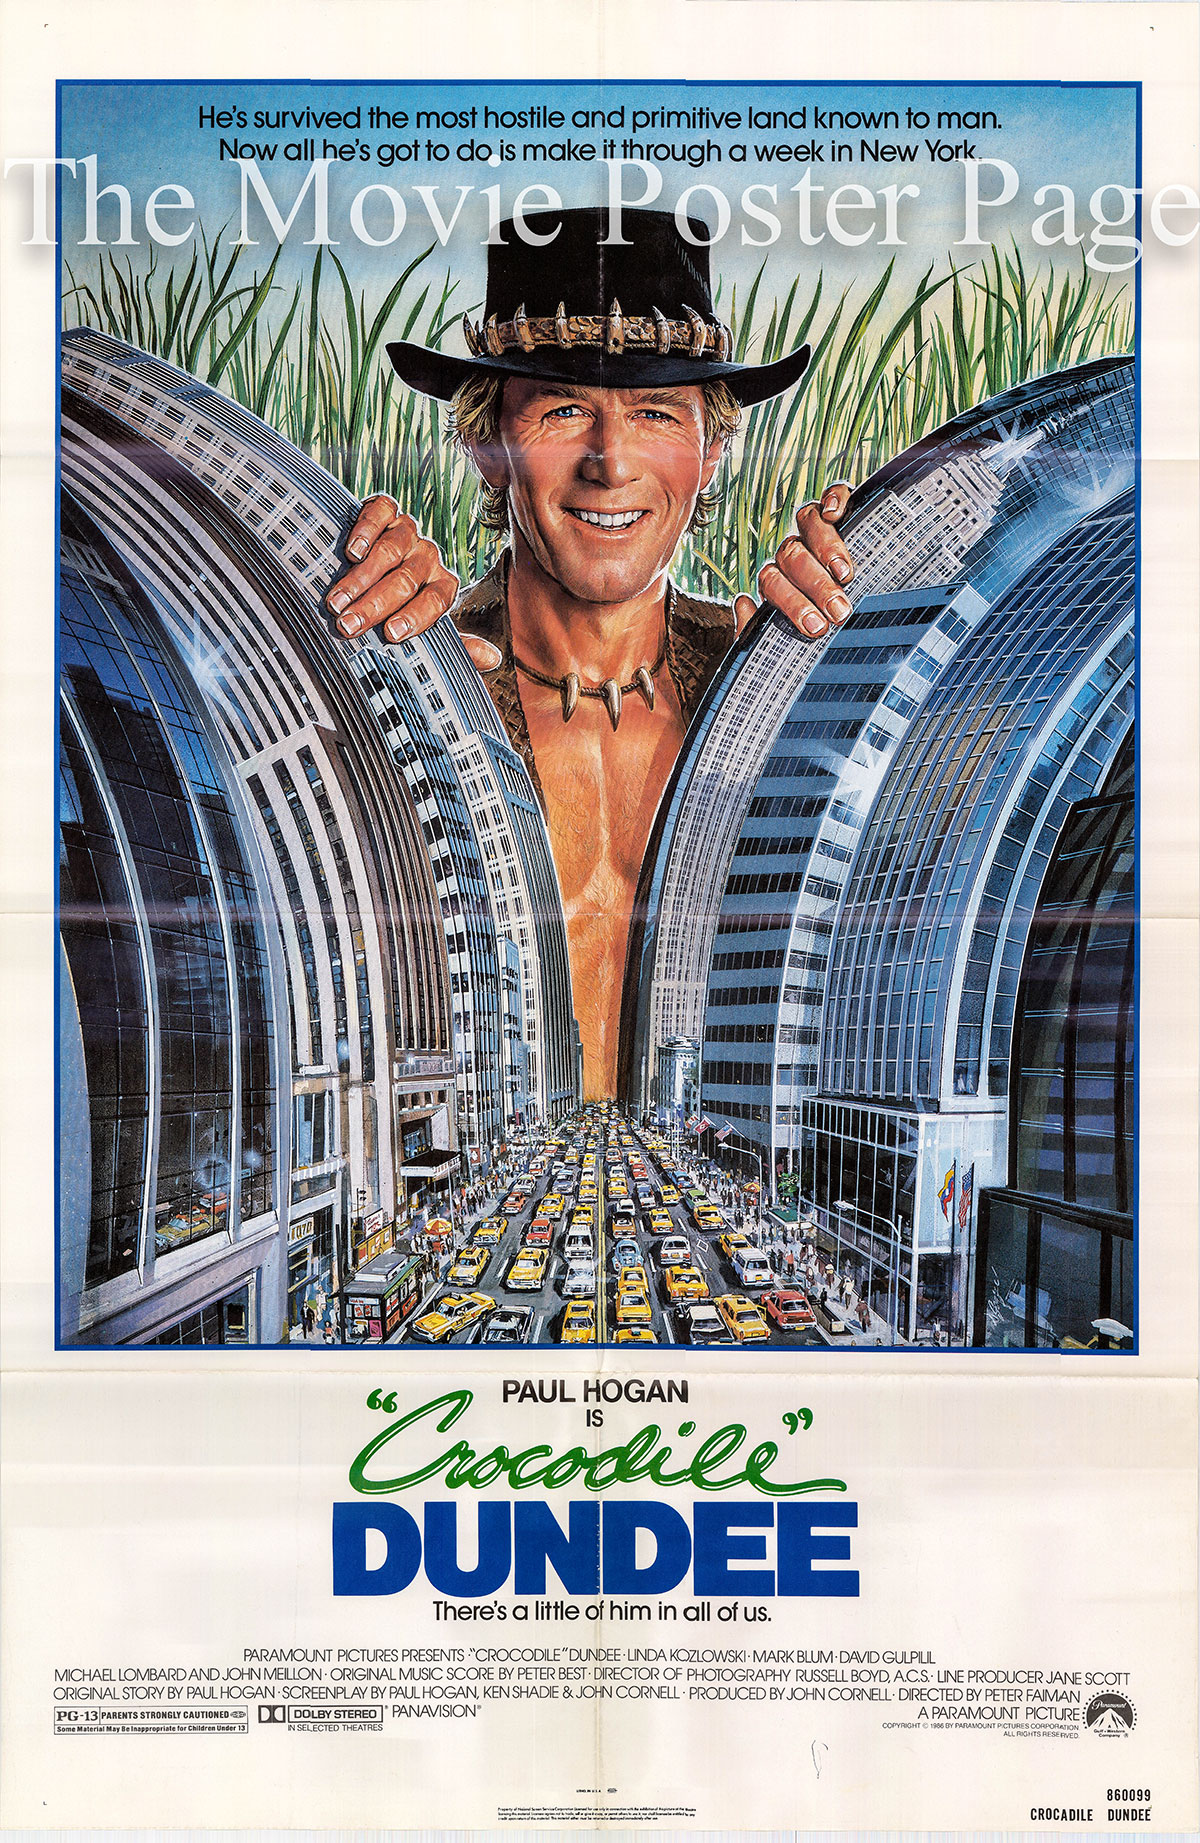 Pictured is a US promotional poster for the 1986 Peter Faiman film Crocodile Dundee starring Paul Hogan as Michael J. Dundee.